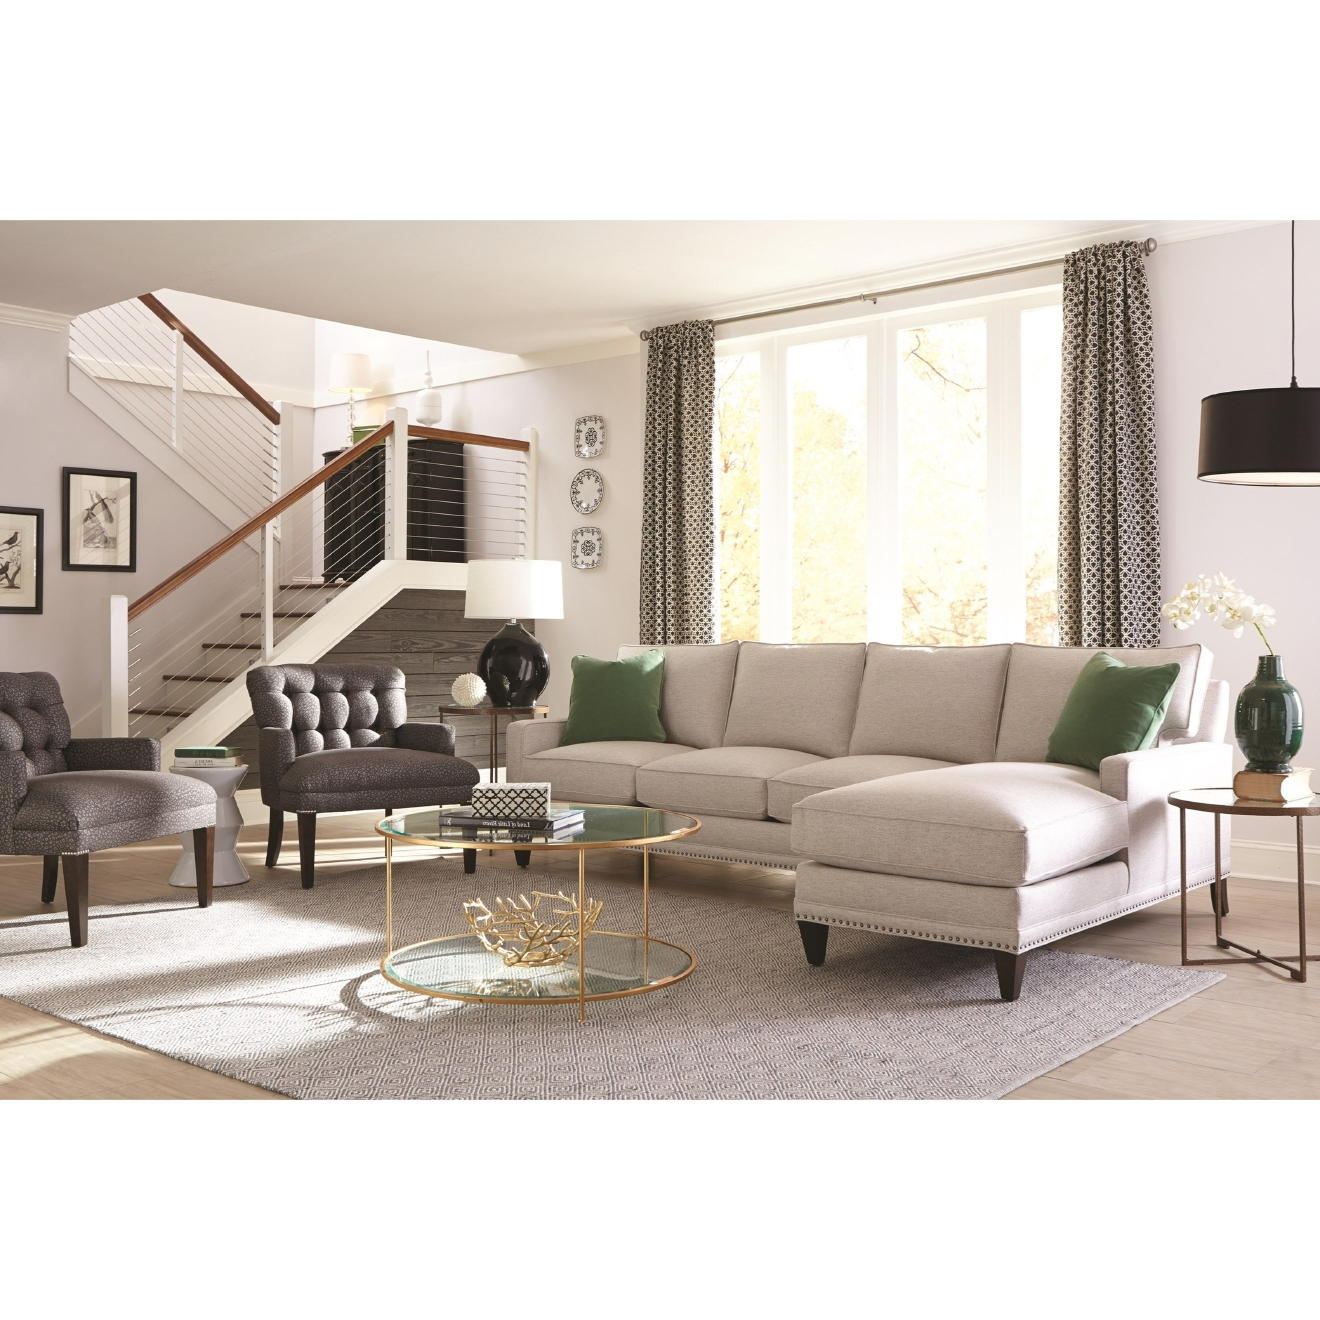 Choosing a new sofa is a big decision – it's a large piece of furniture, you'll probably sit on it daily, and its style will play a big part in defining the space it's in. Here are a few tips to help you find one that makes you happy and serves you well for years to come. (Image: Courtesy Belfort Furniture)